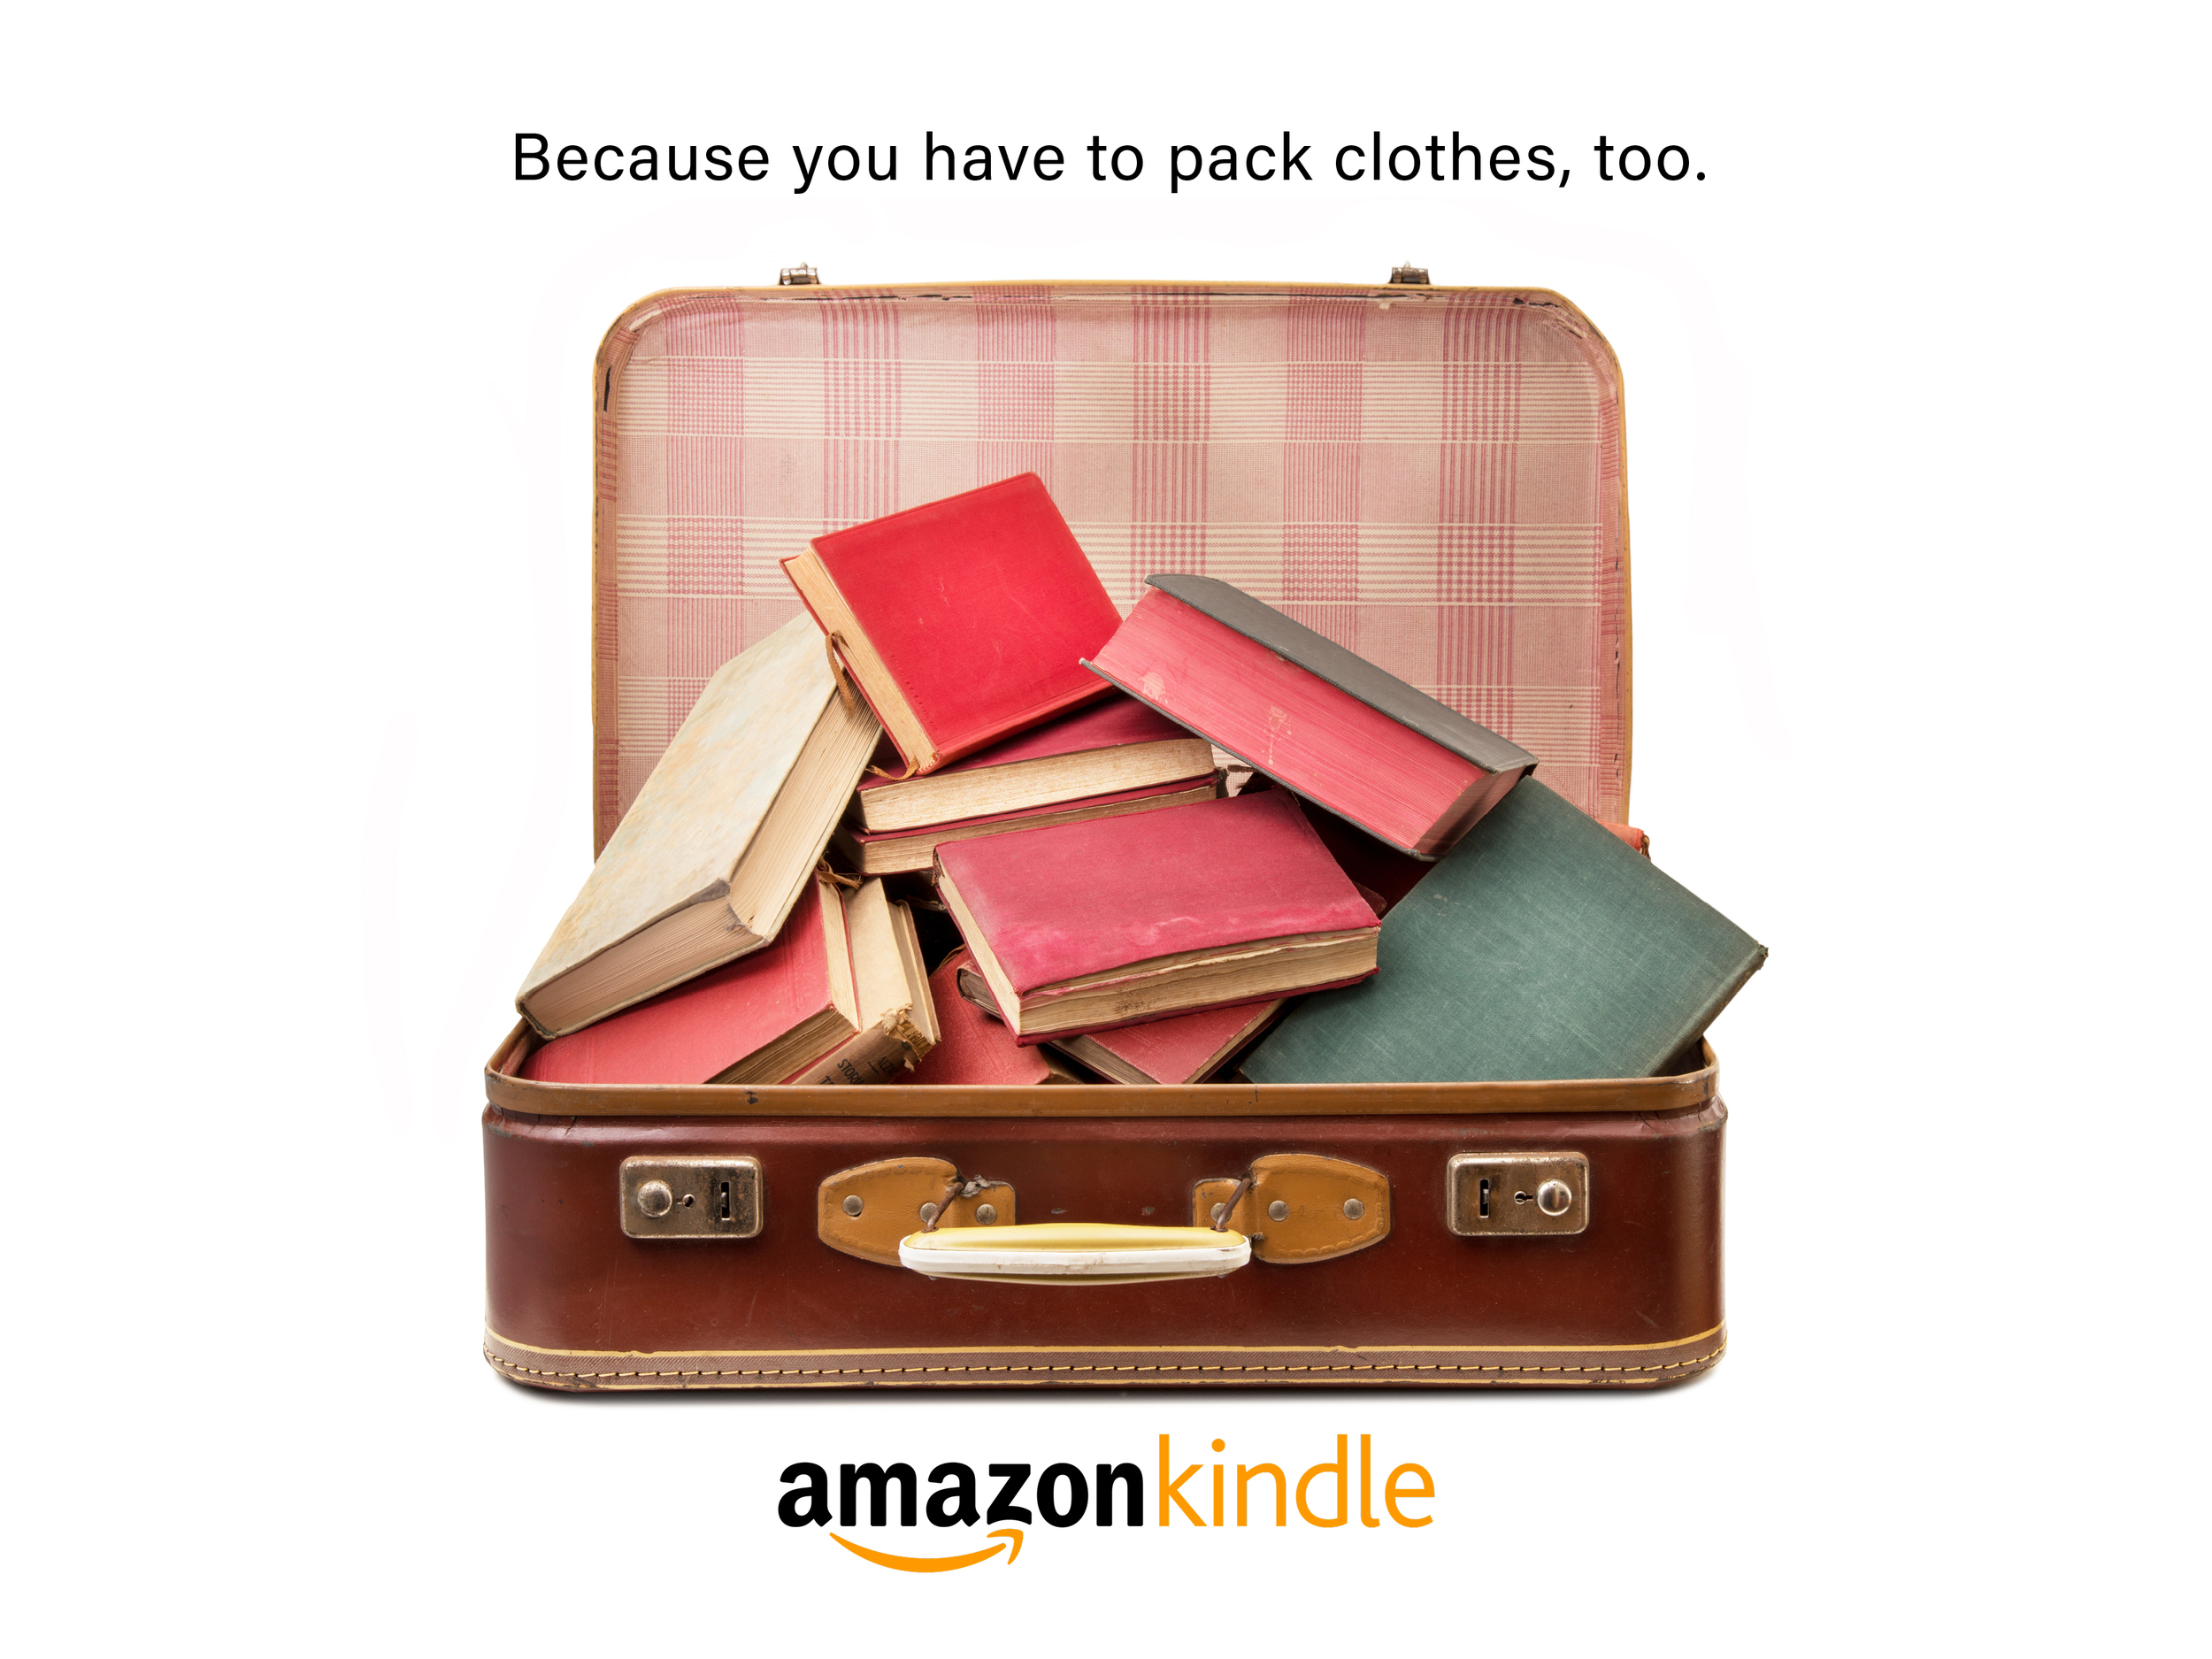 kindle_suitcase_ad.jpg